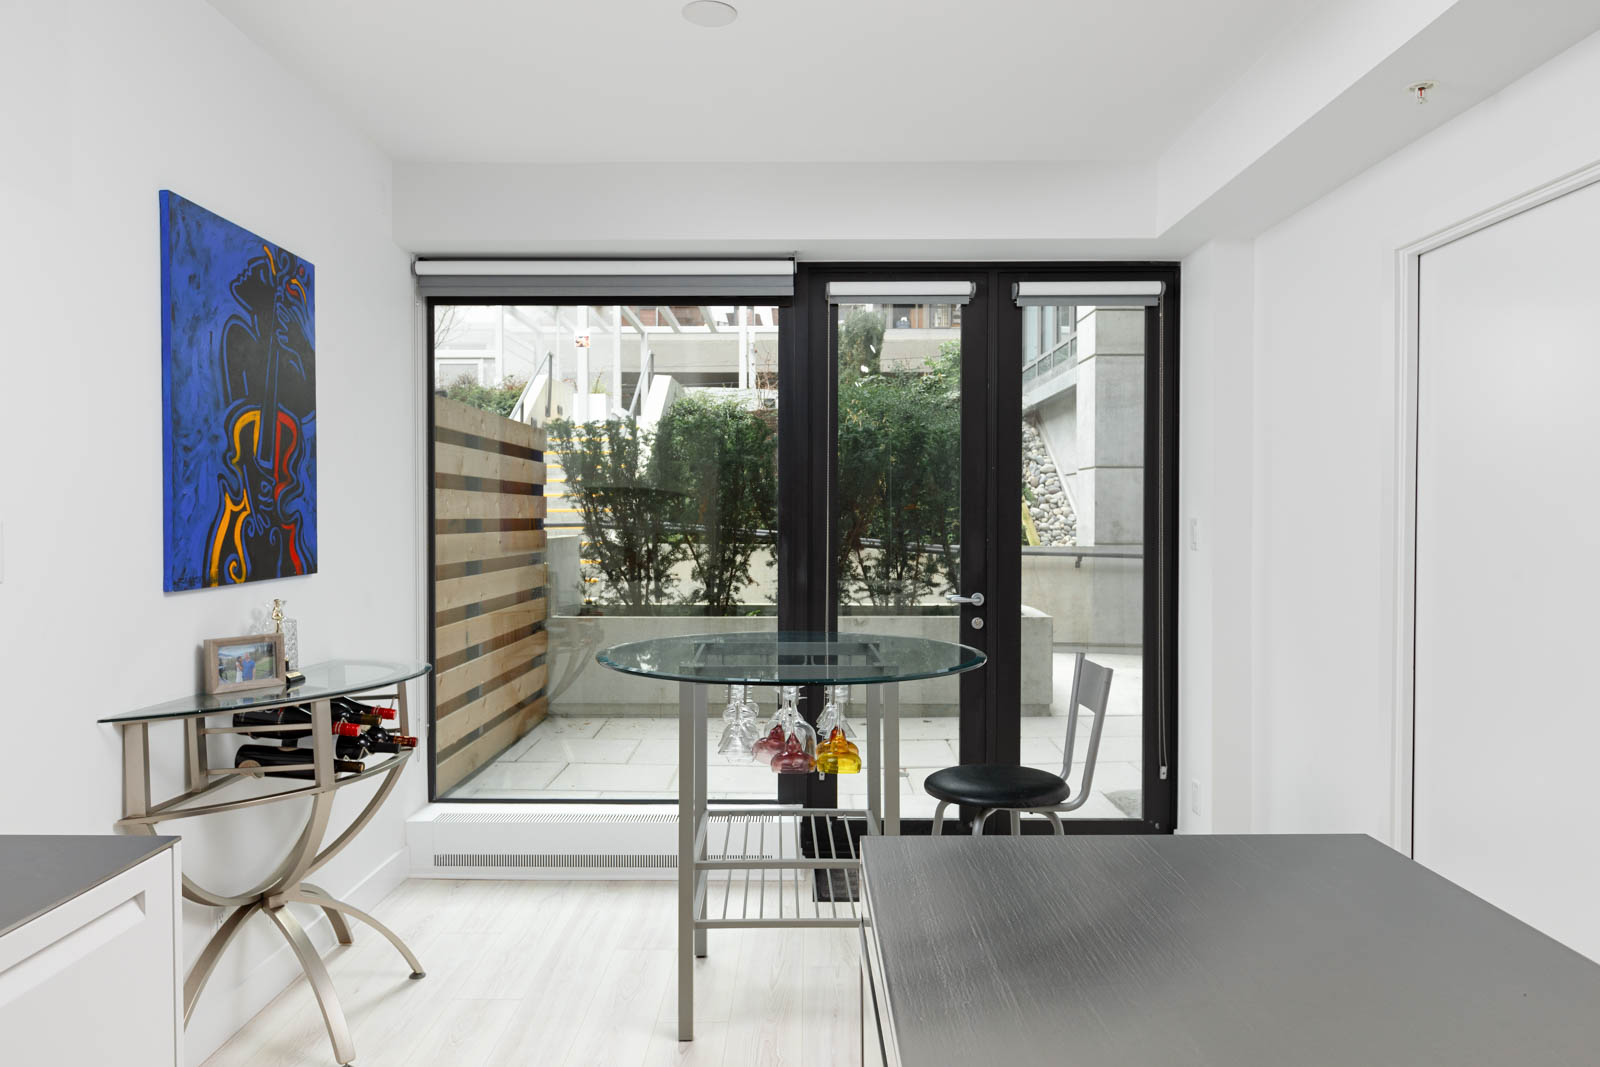 Dining area with access to terrace at Downtown Vancouver rental condo.